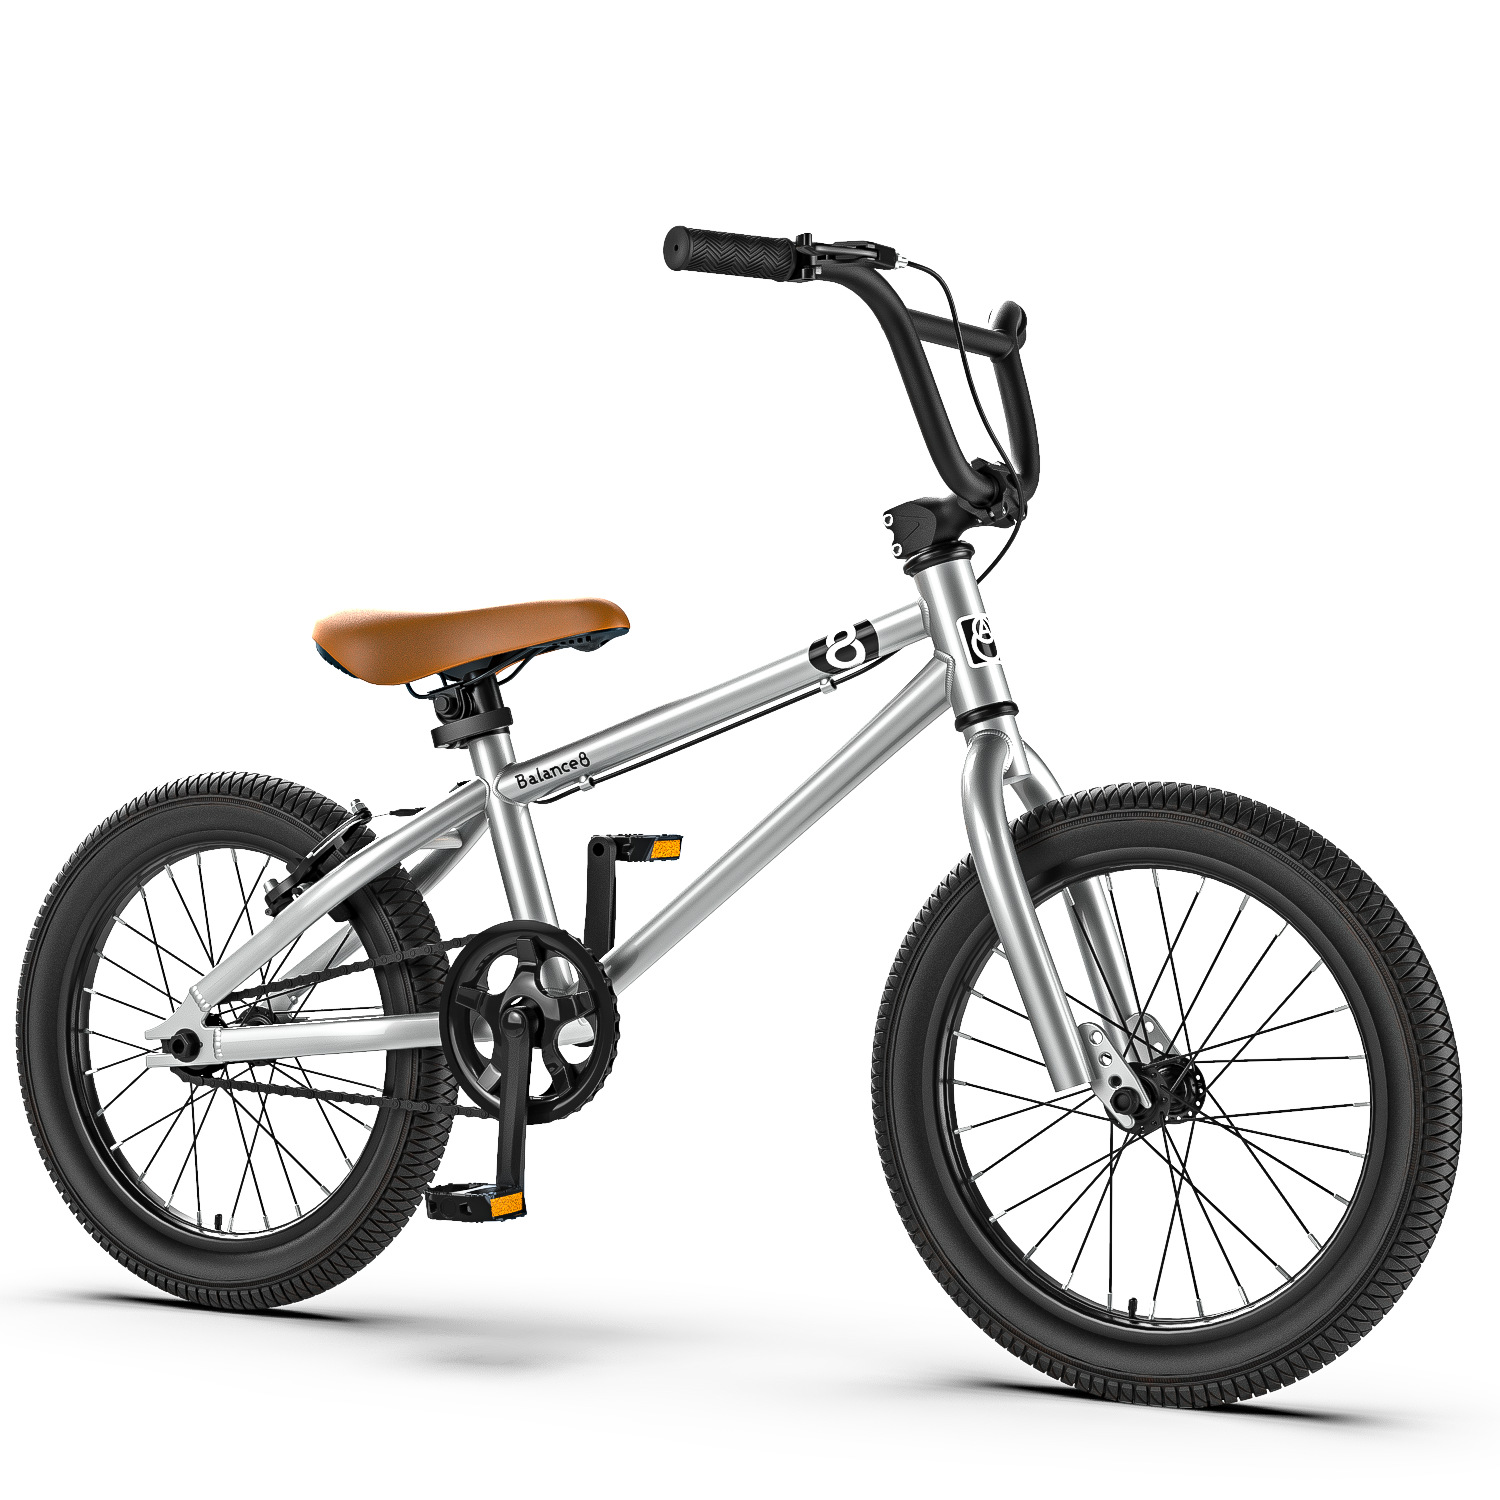 New children's bicycle bicycle 16 inch 20 inch 4 to 12 years old youth bicycle elementary school ch